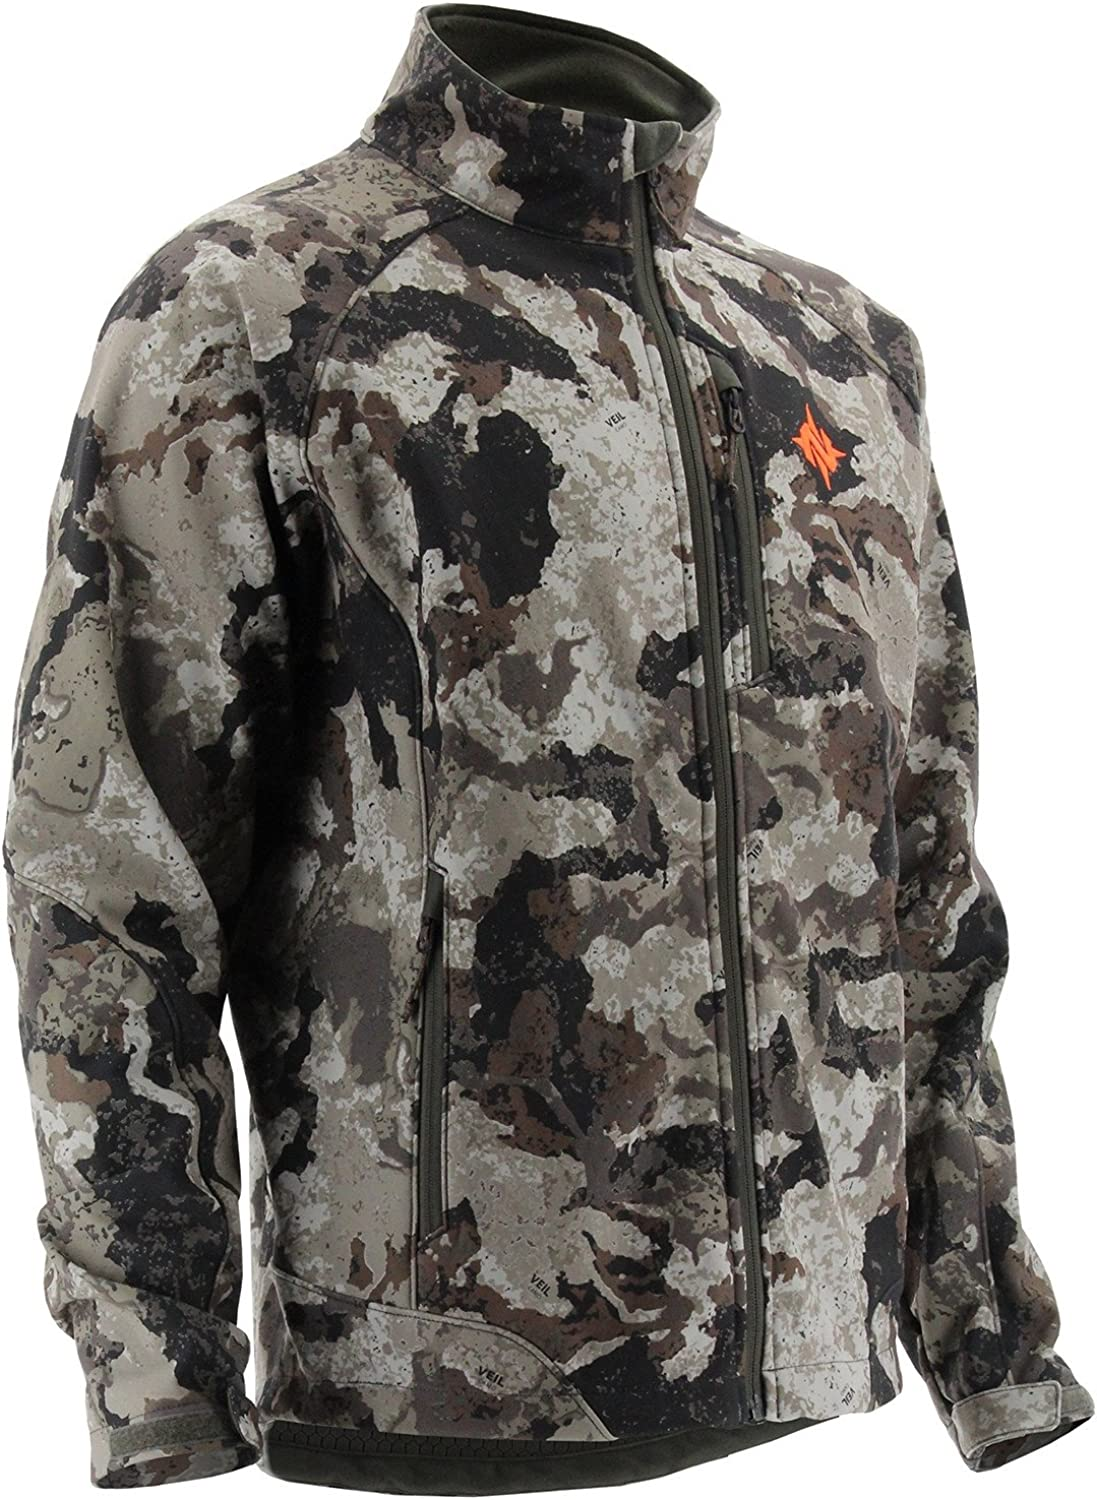 Nomad Men's Barrier Performance Soft Save money Shell Jacket S with cheap Hunting